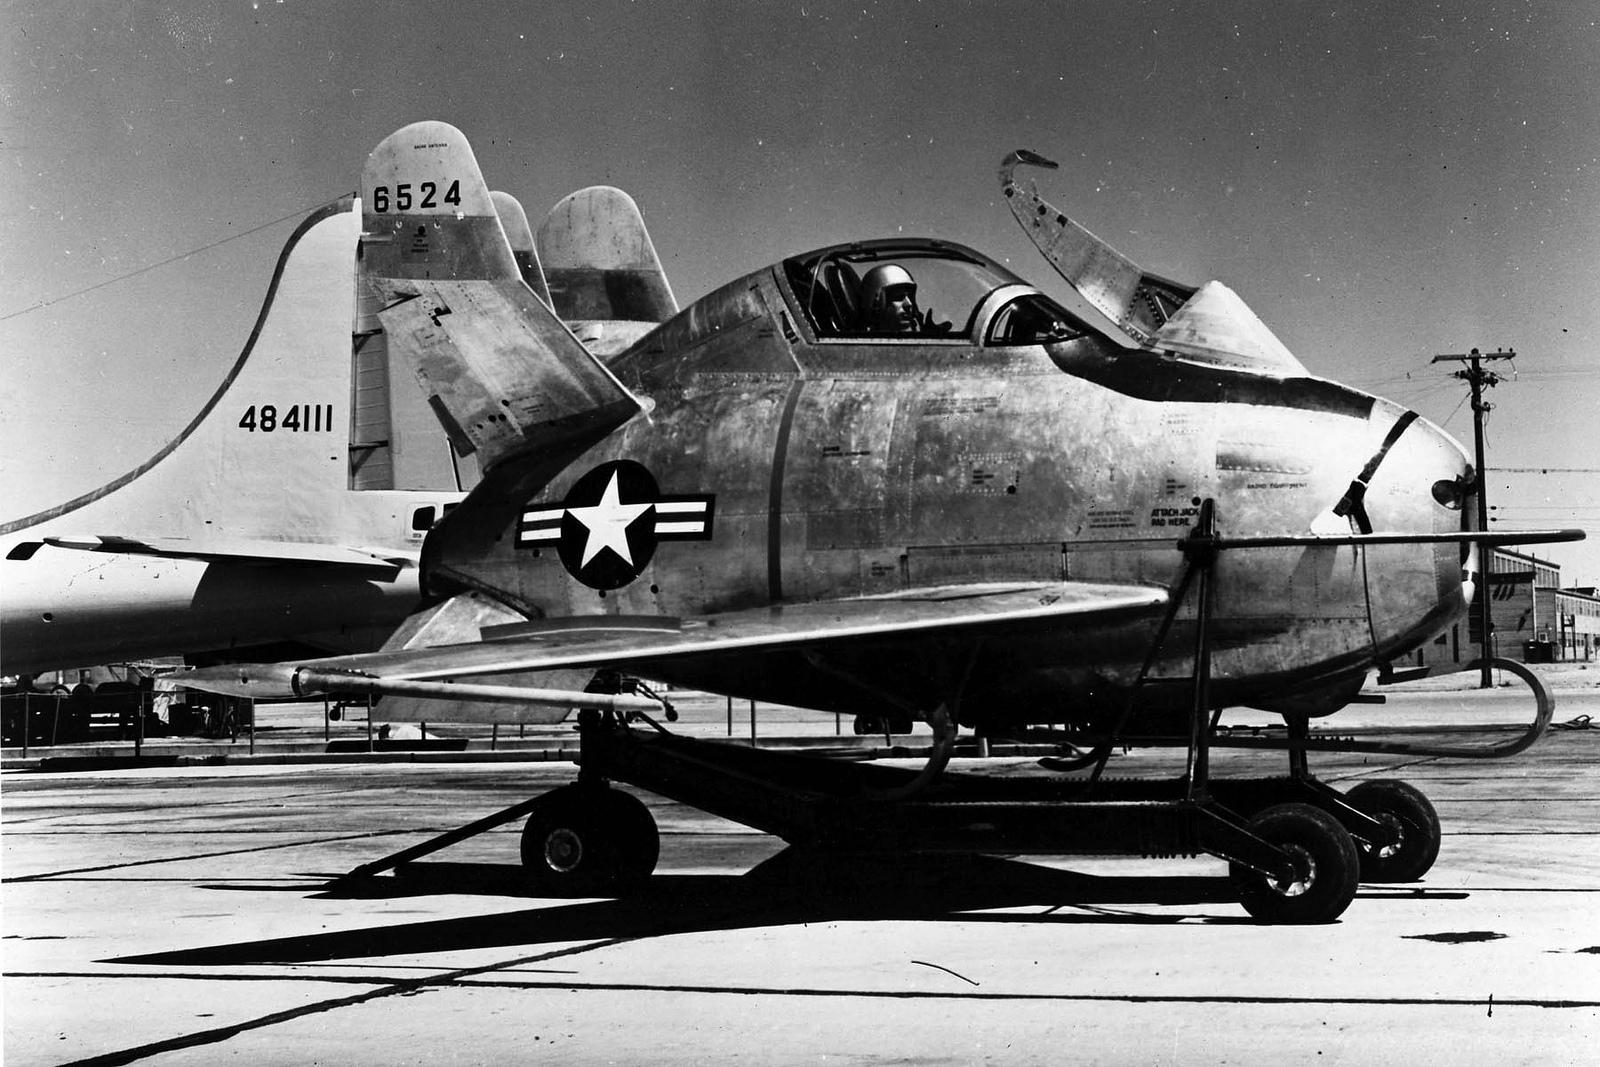 McDonnell XF-85 | Flickr - Photo Sharing!